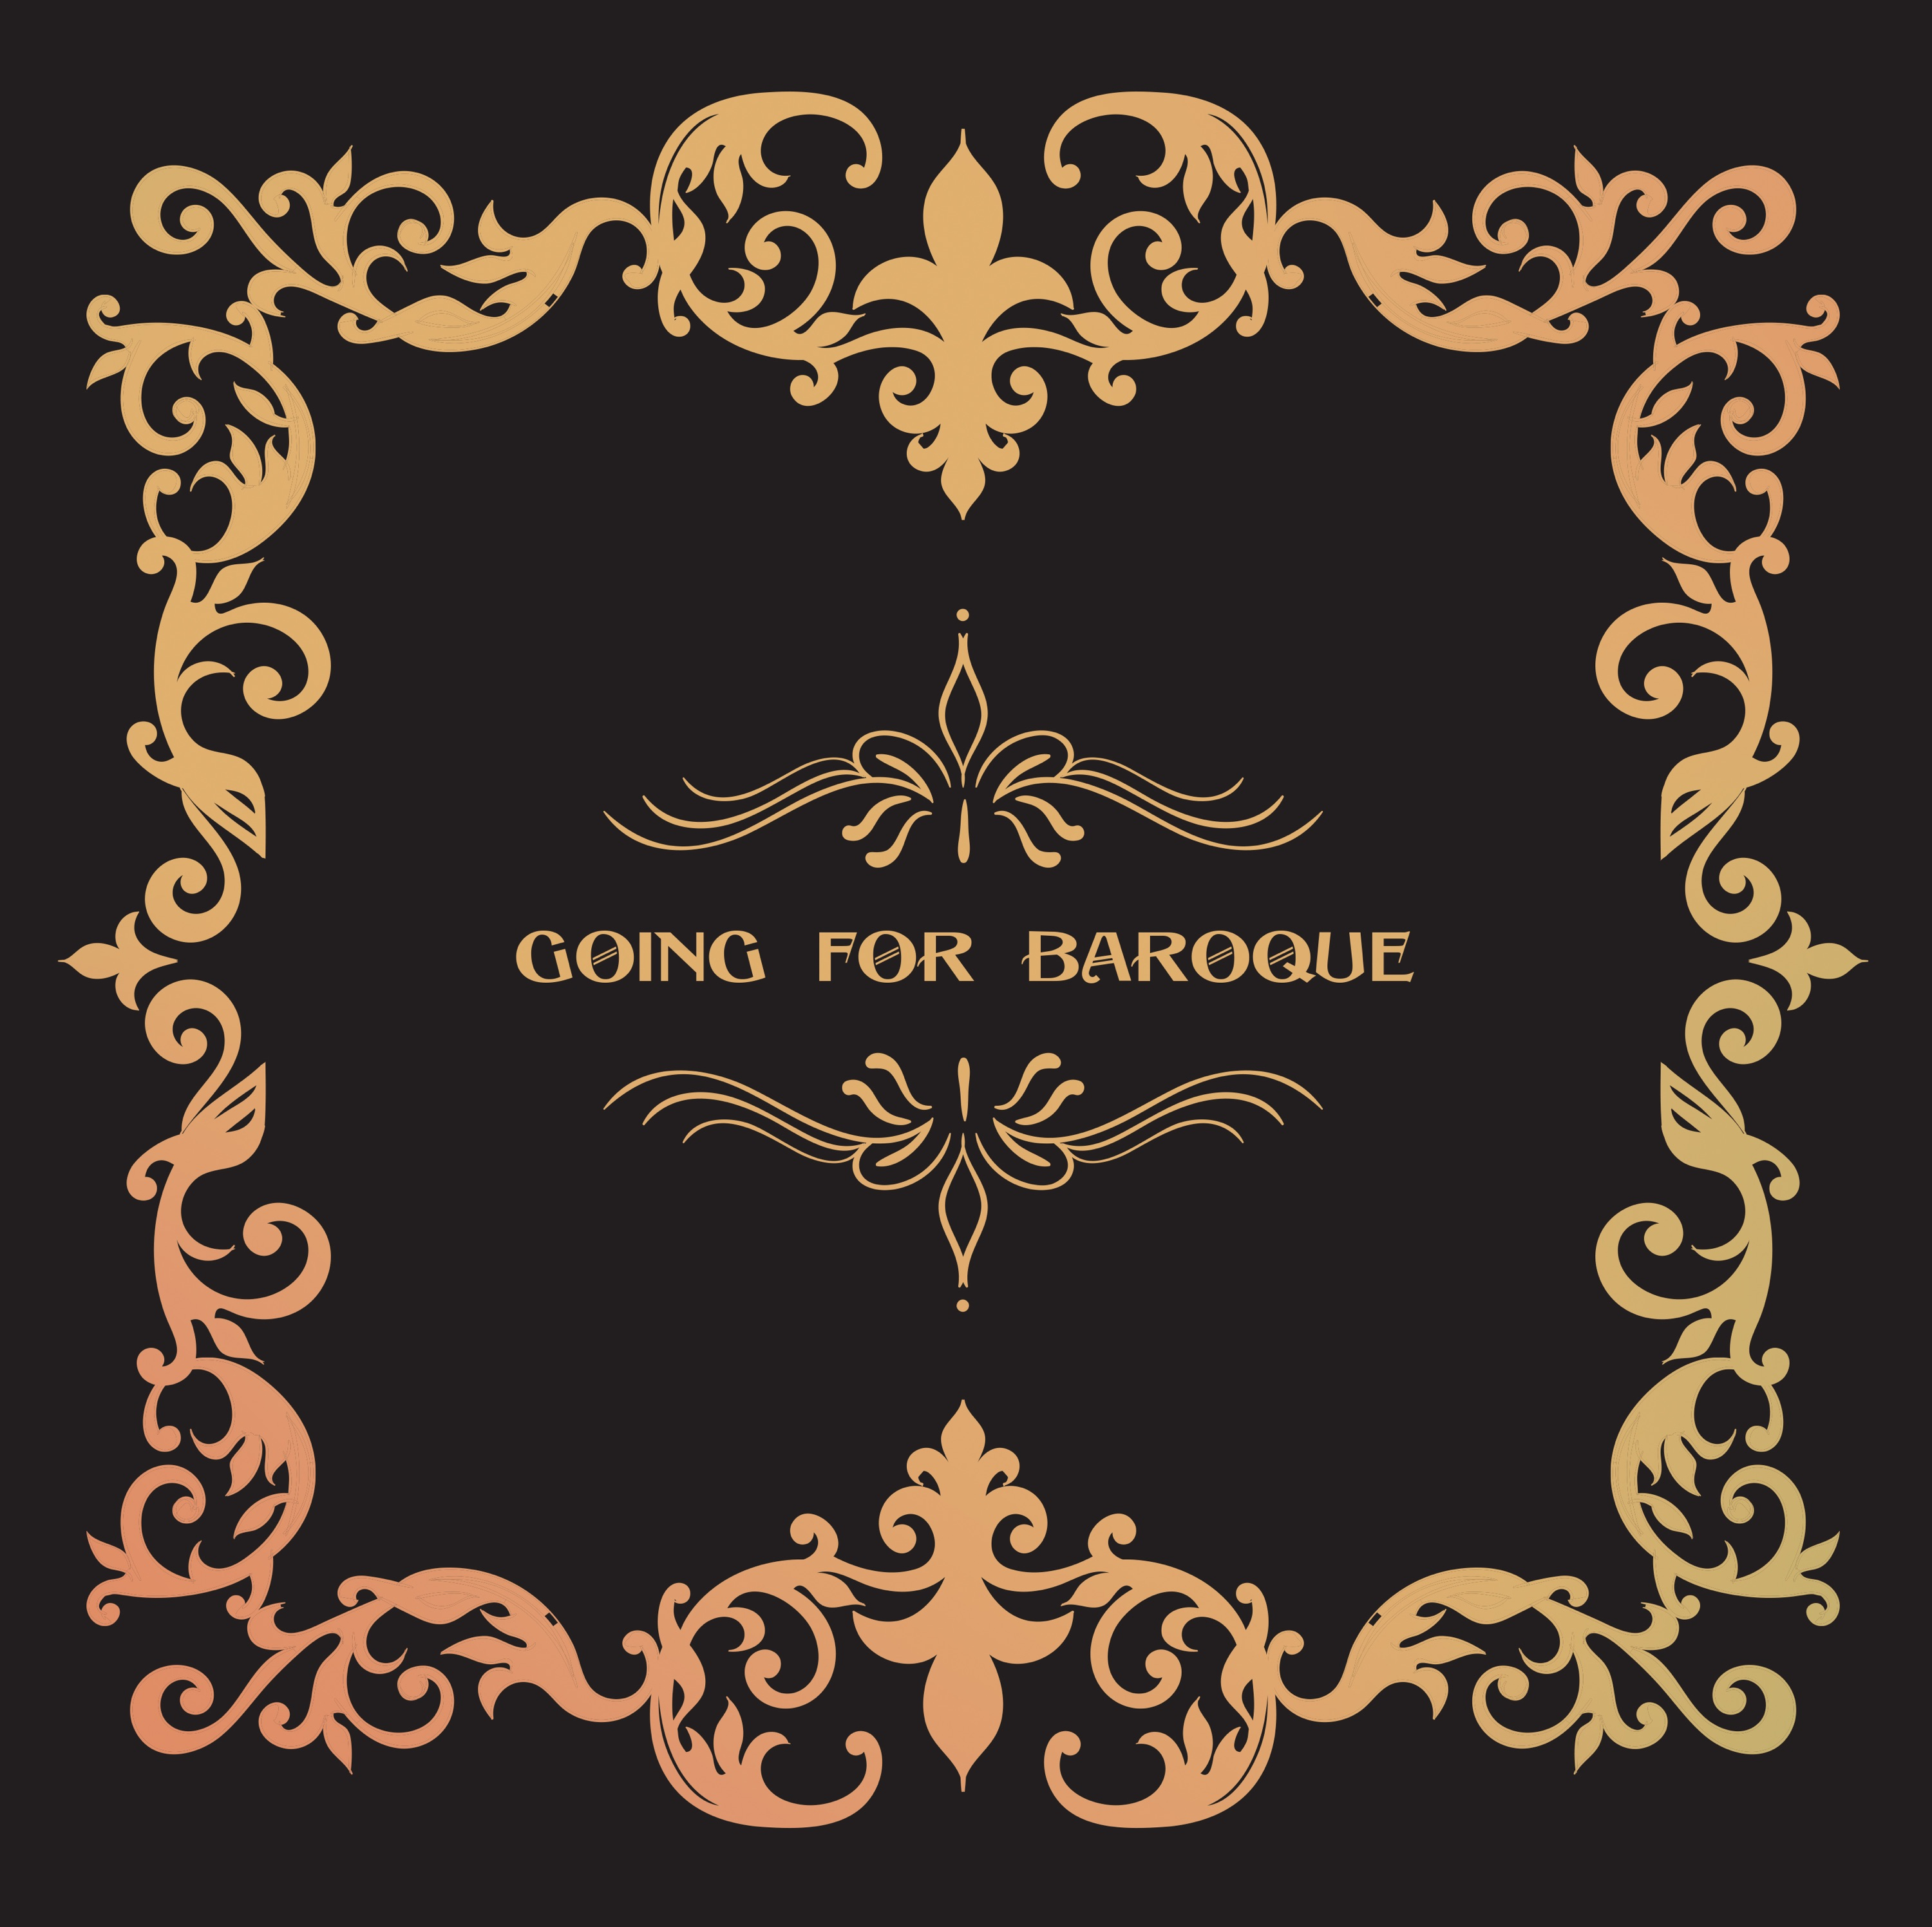 Baroque Coverflow Carousel album cover